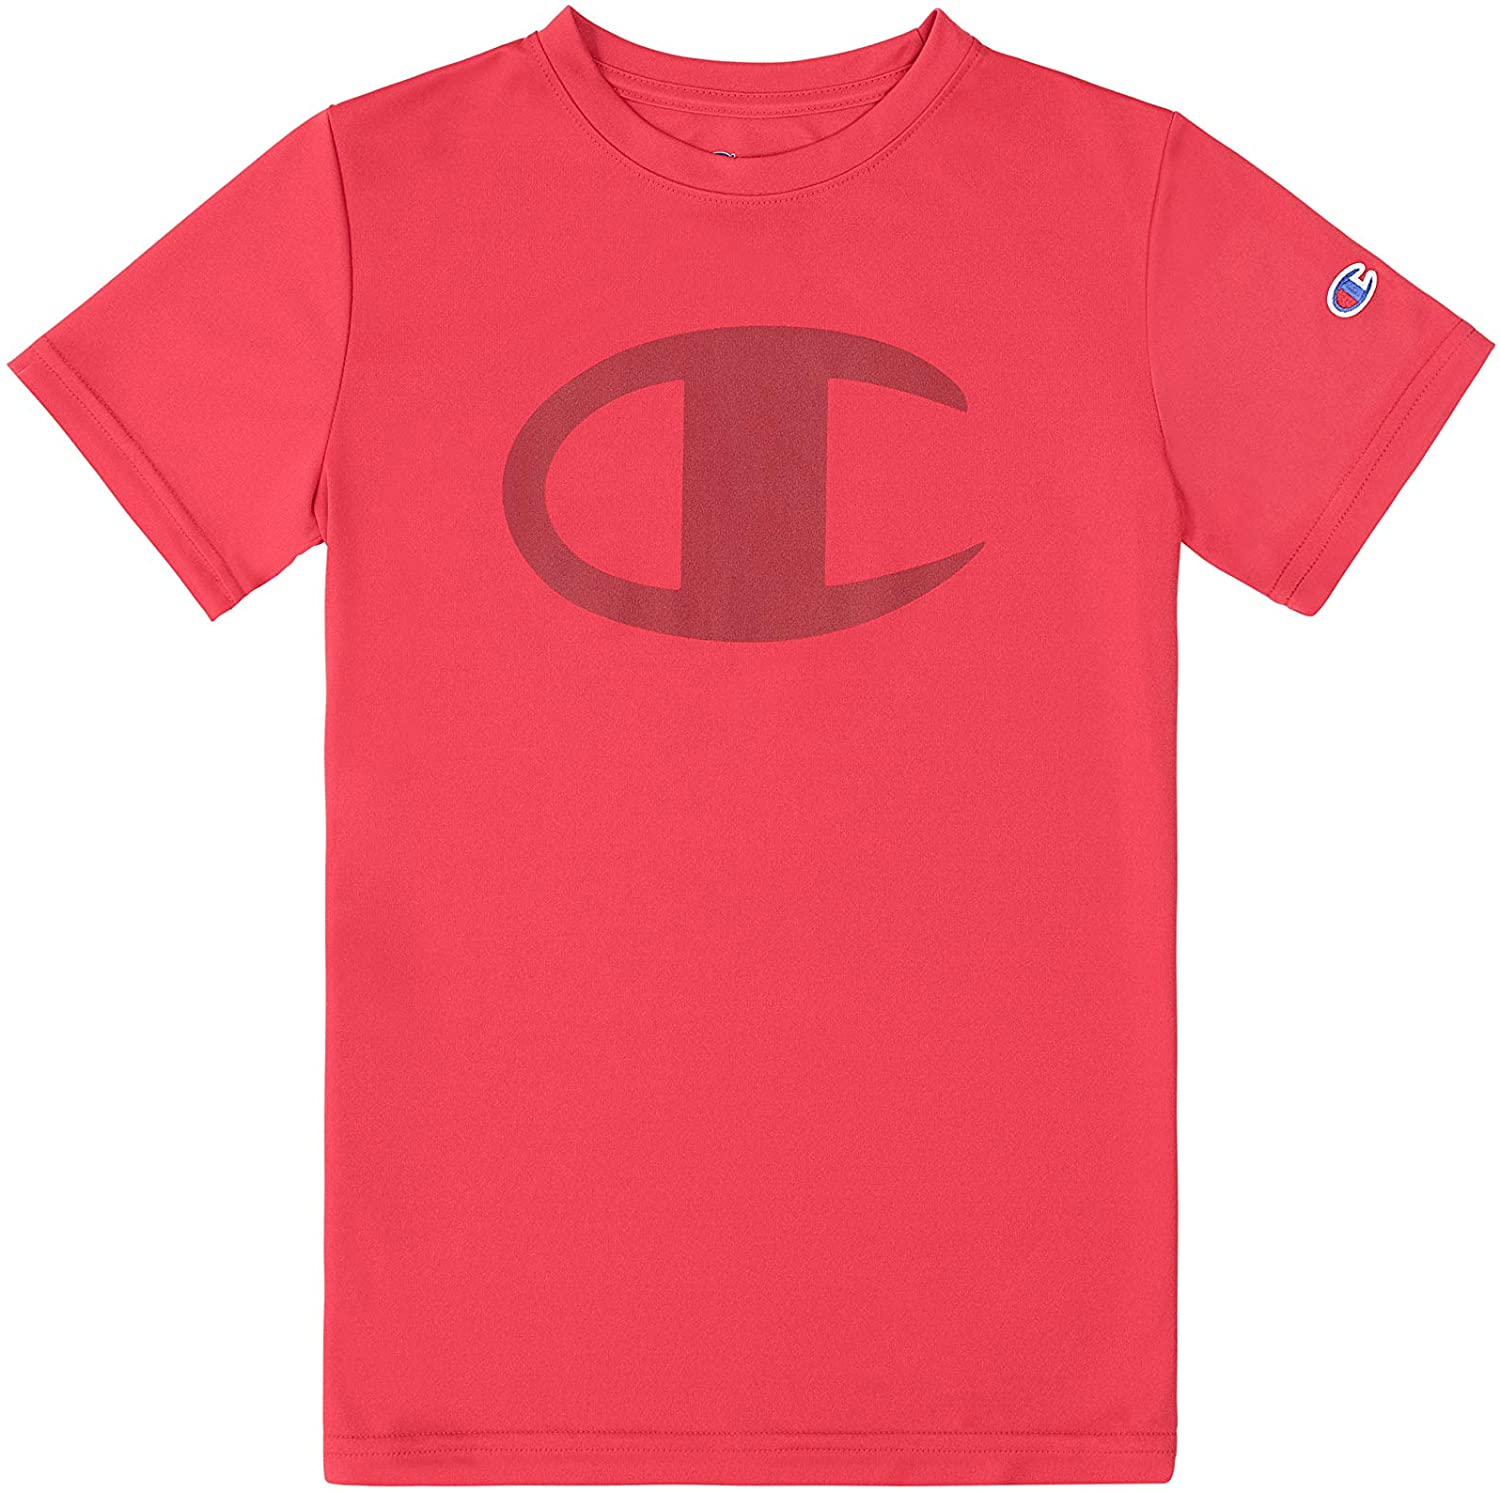 Champion Under blast sales Kids Clothes T-Shirt Directly managed store Boys Athletic Tech Performance Sho